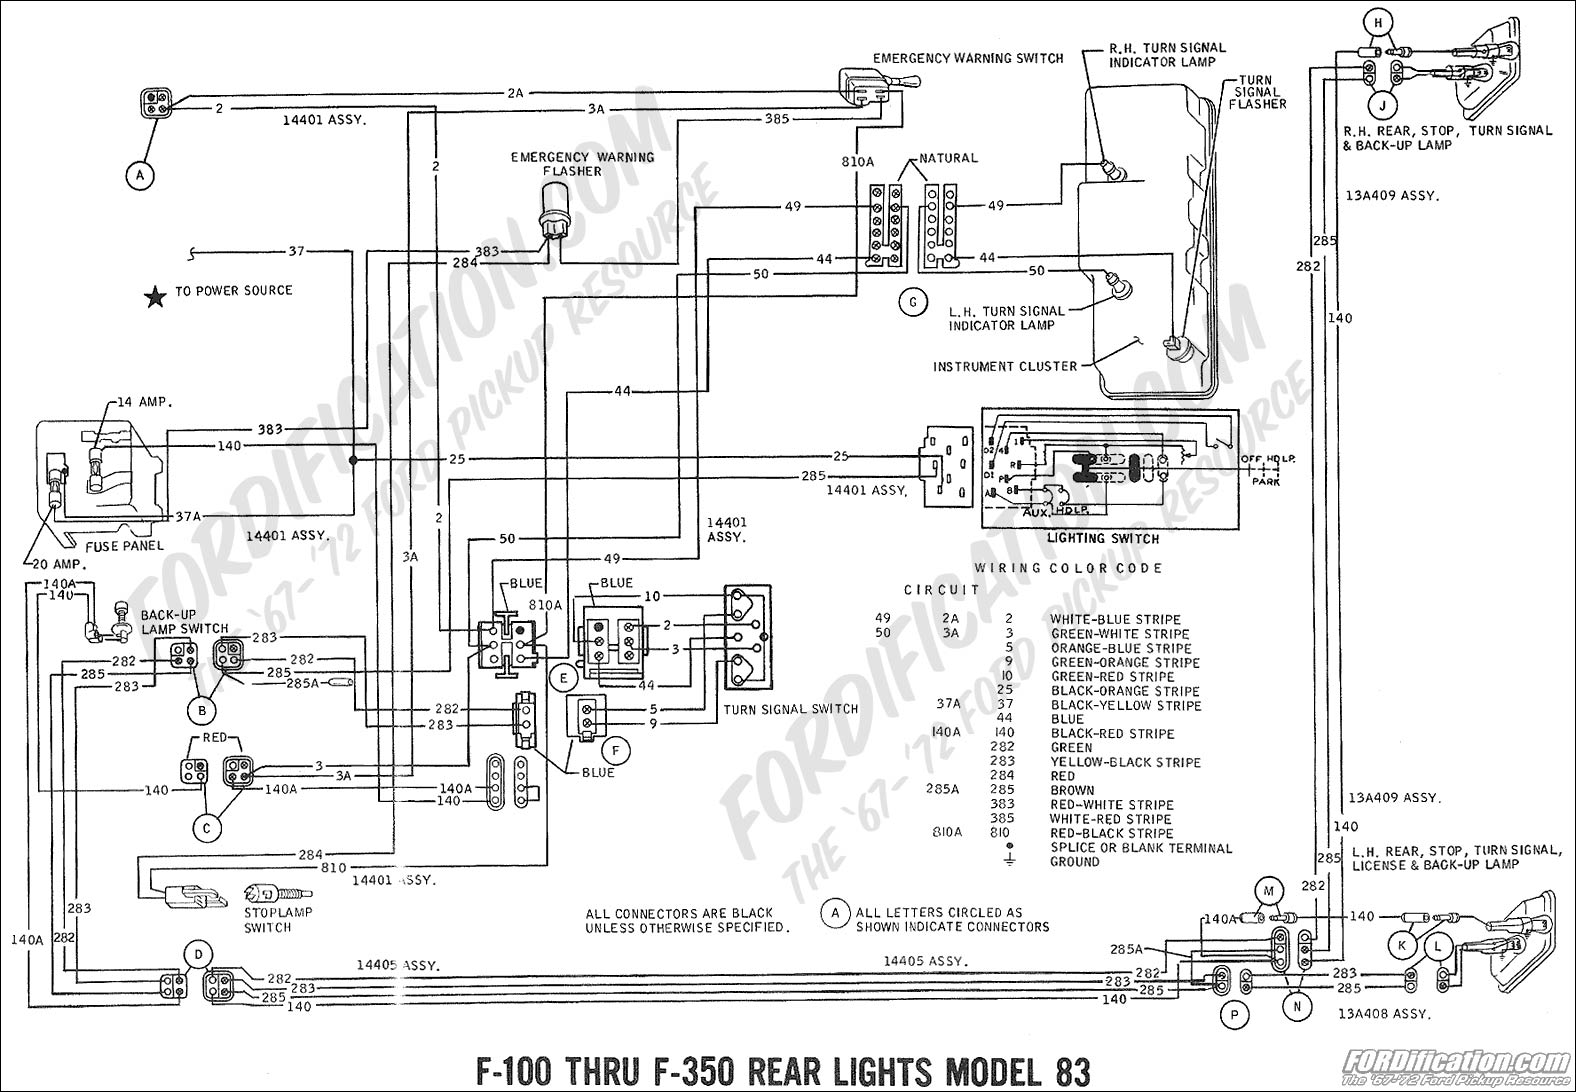 81 F100 Custom Wiring Harness Electrical Diagrams Connectors Automotive 1977 Ford Diagram Online Auto 1968